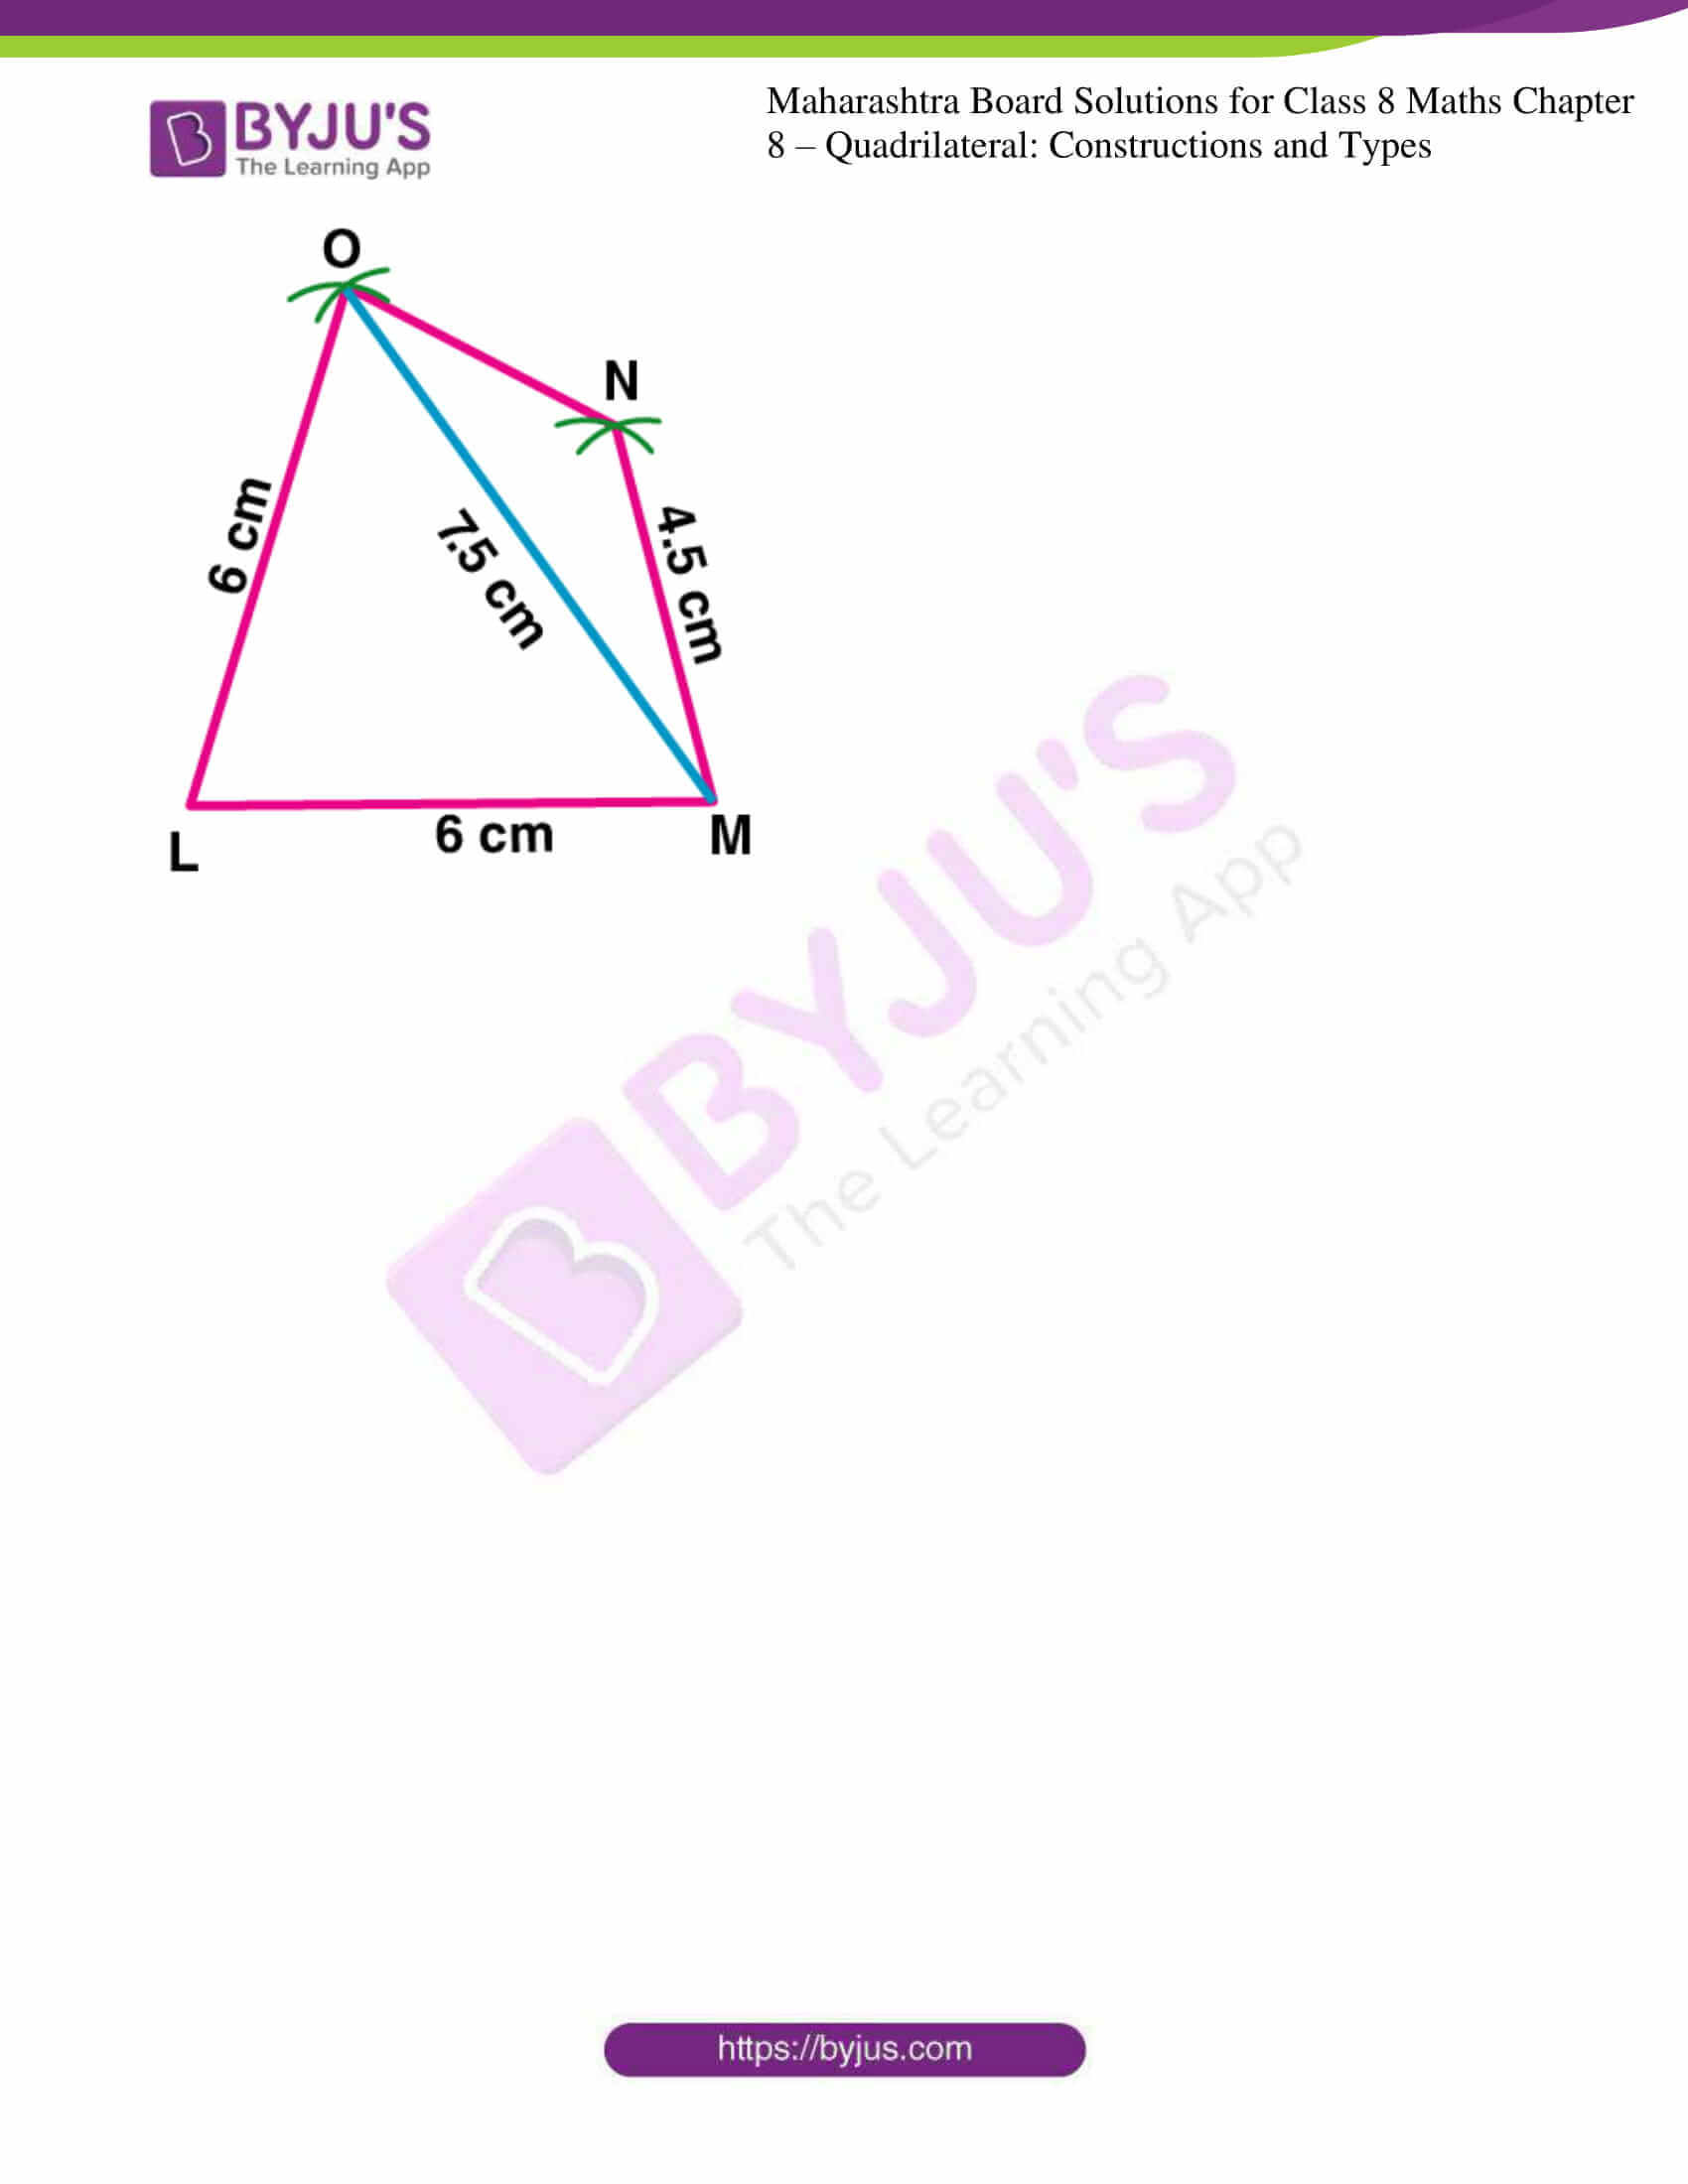 msbshse sol for class 8 maths chapter 8 05